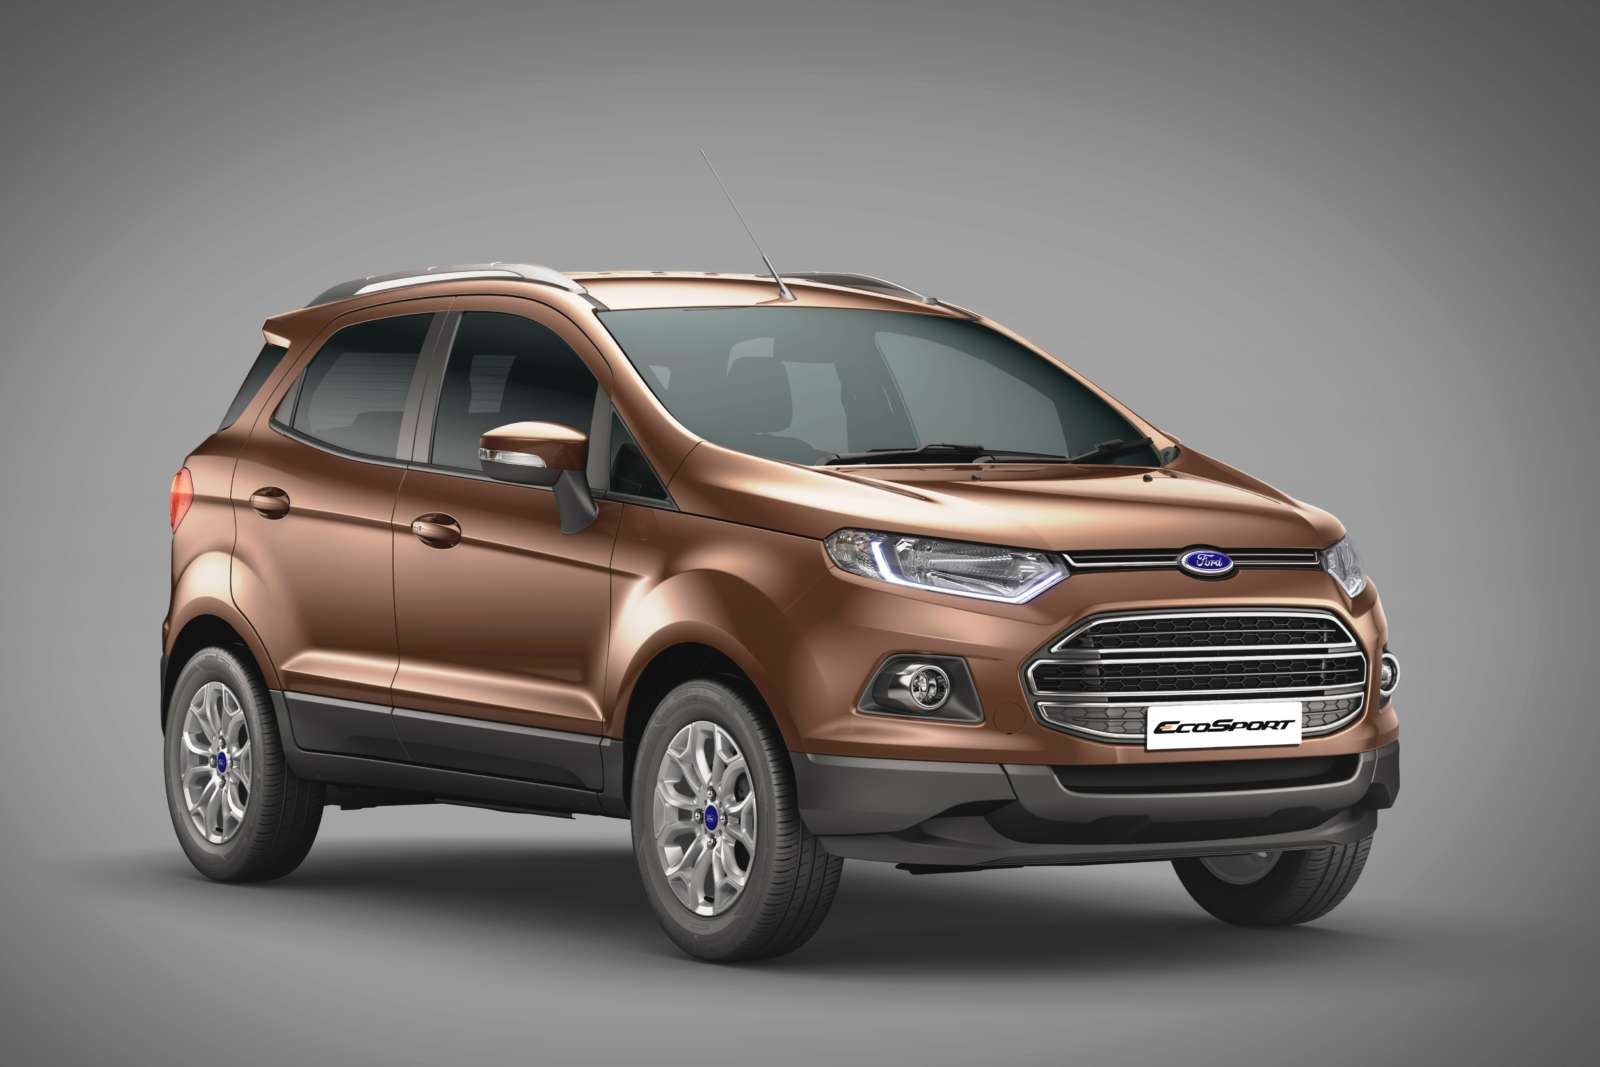 Image Result For Ford Ecosport Owners Manual